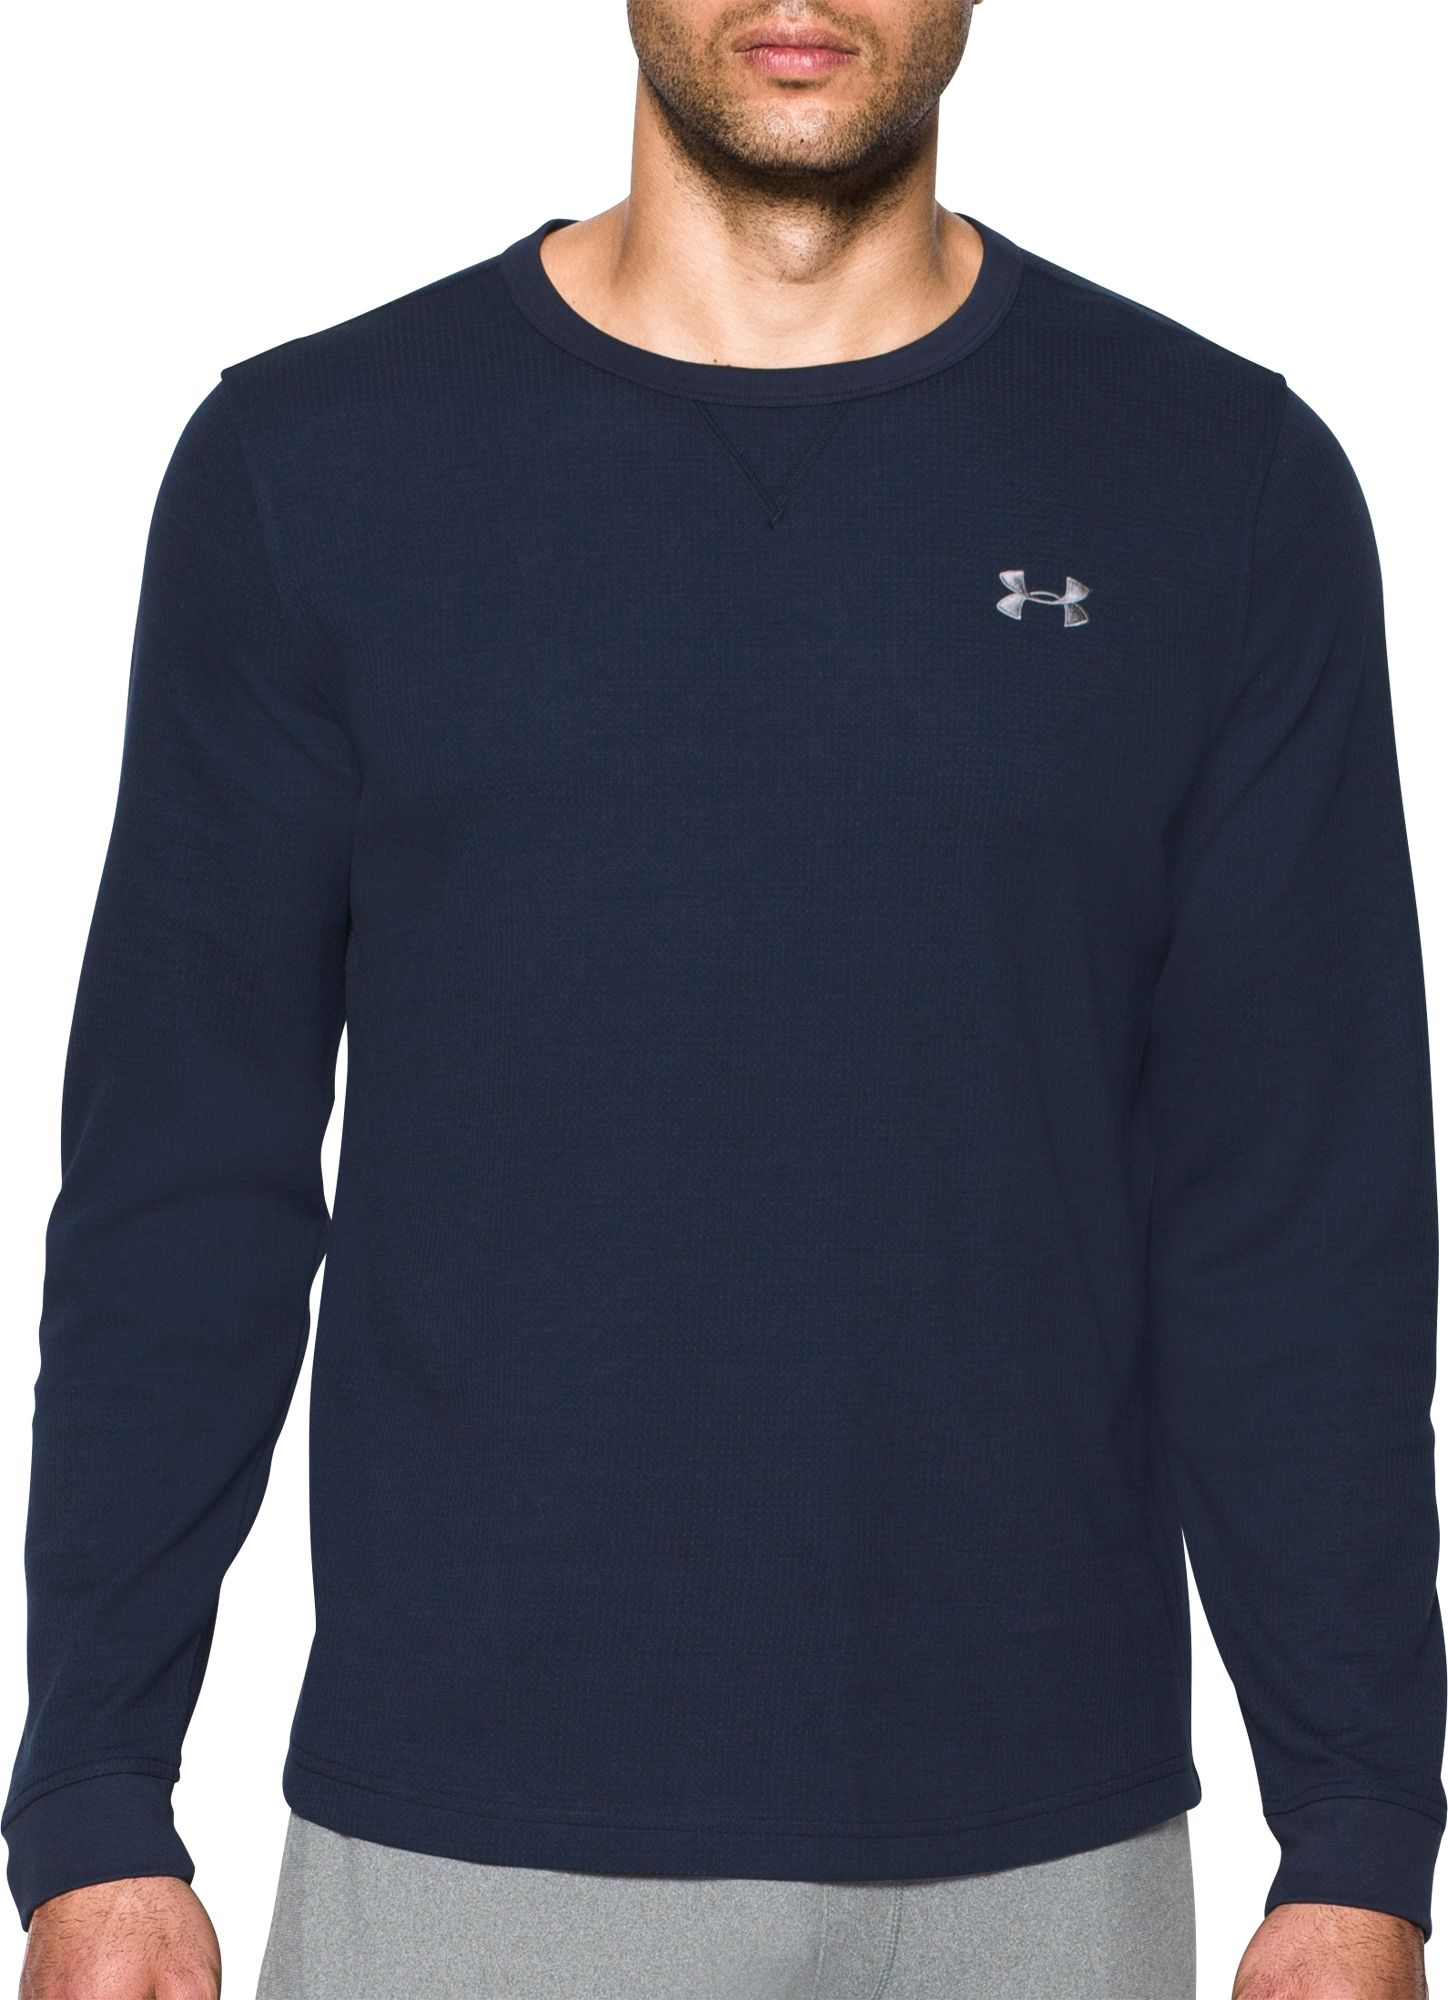 Under Armour Men's Waffle Long Sleeve Shirt | DICK'S Sporting Goods